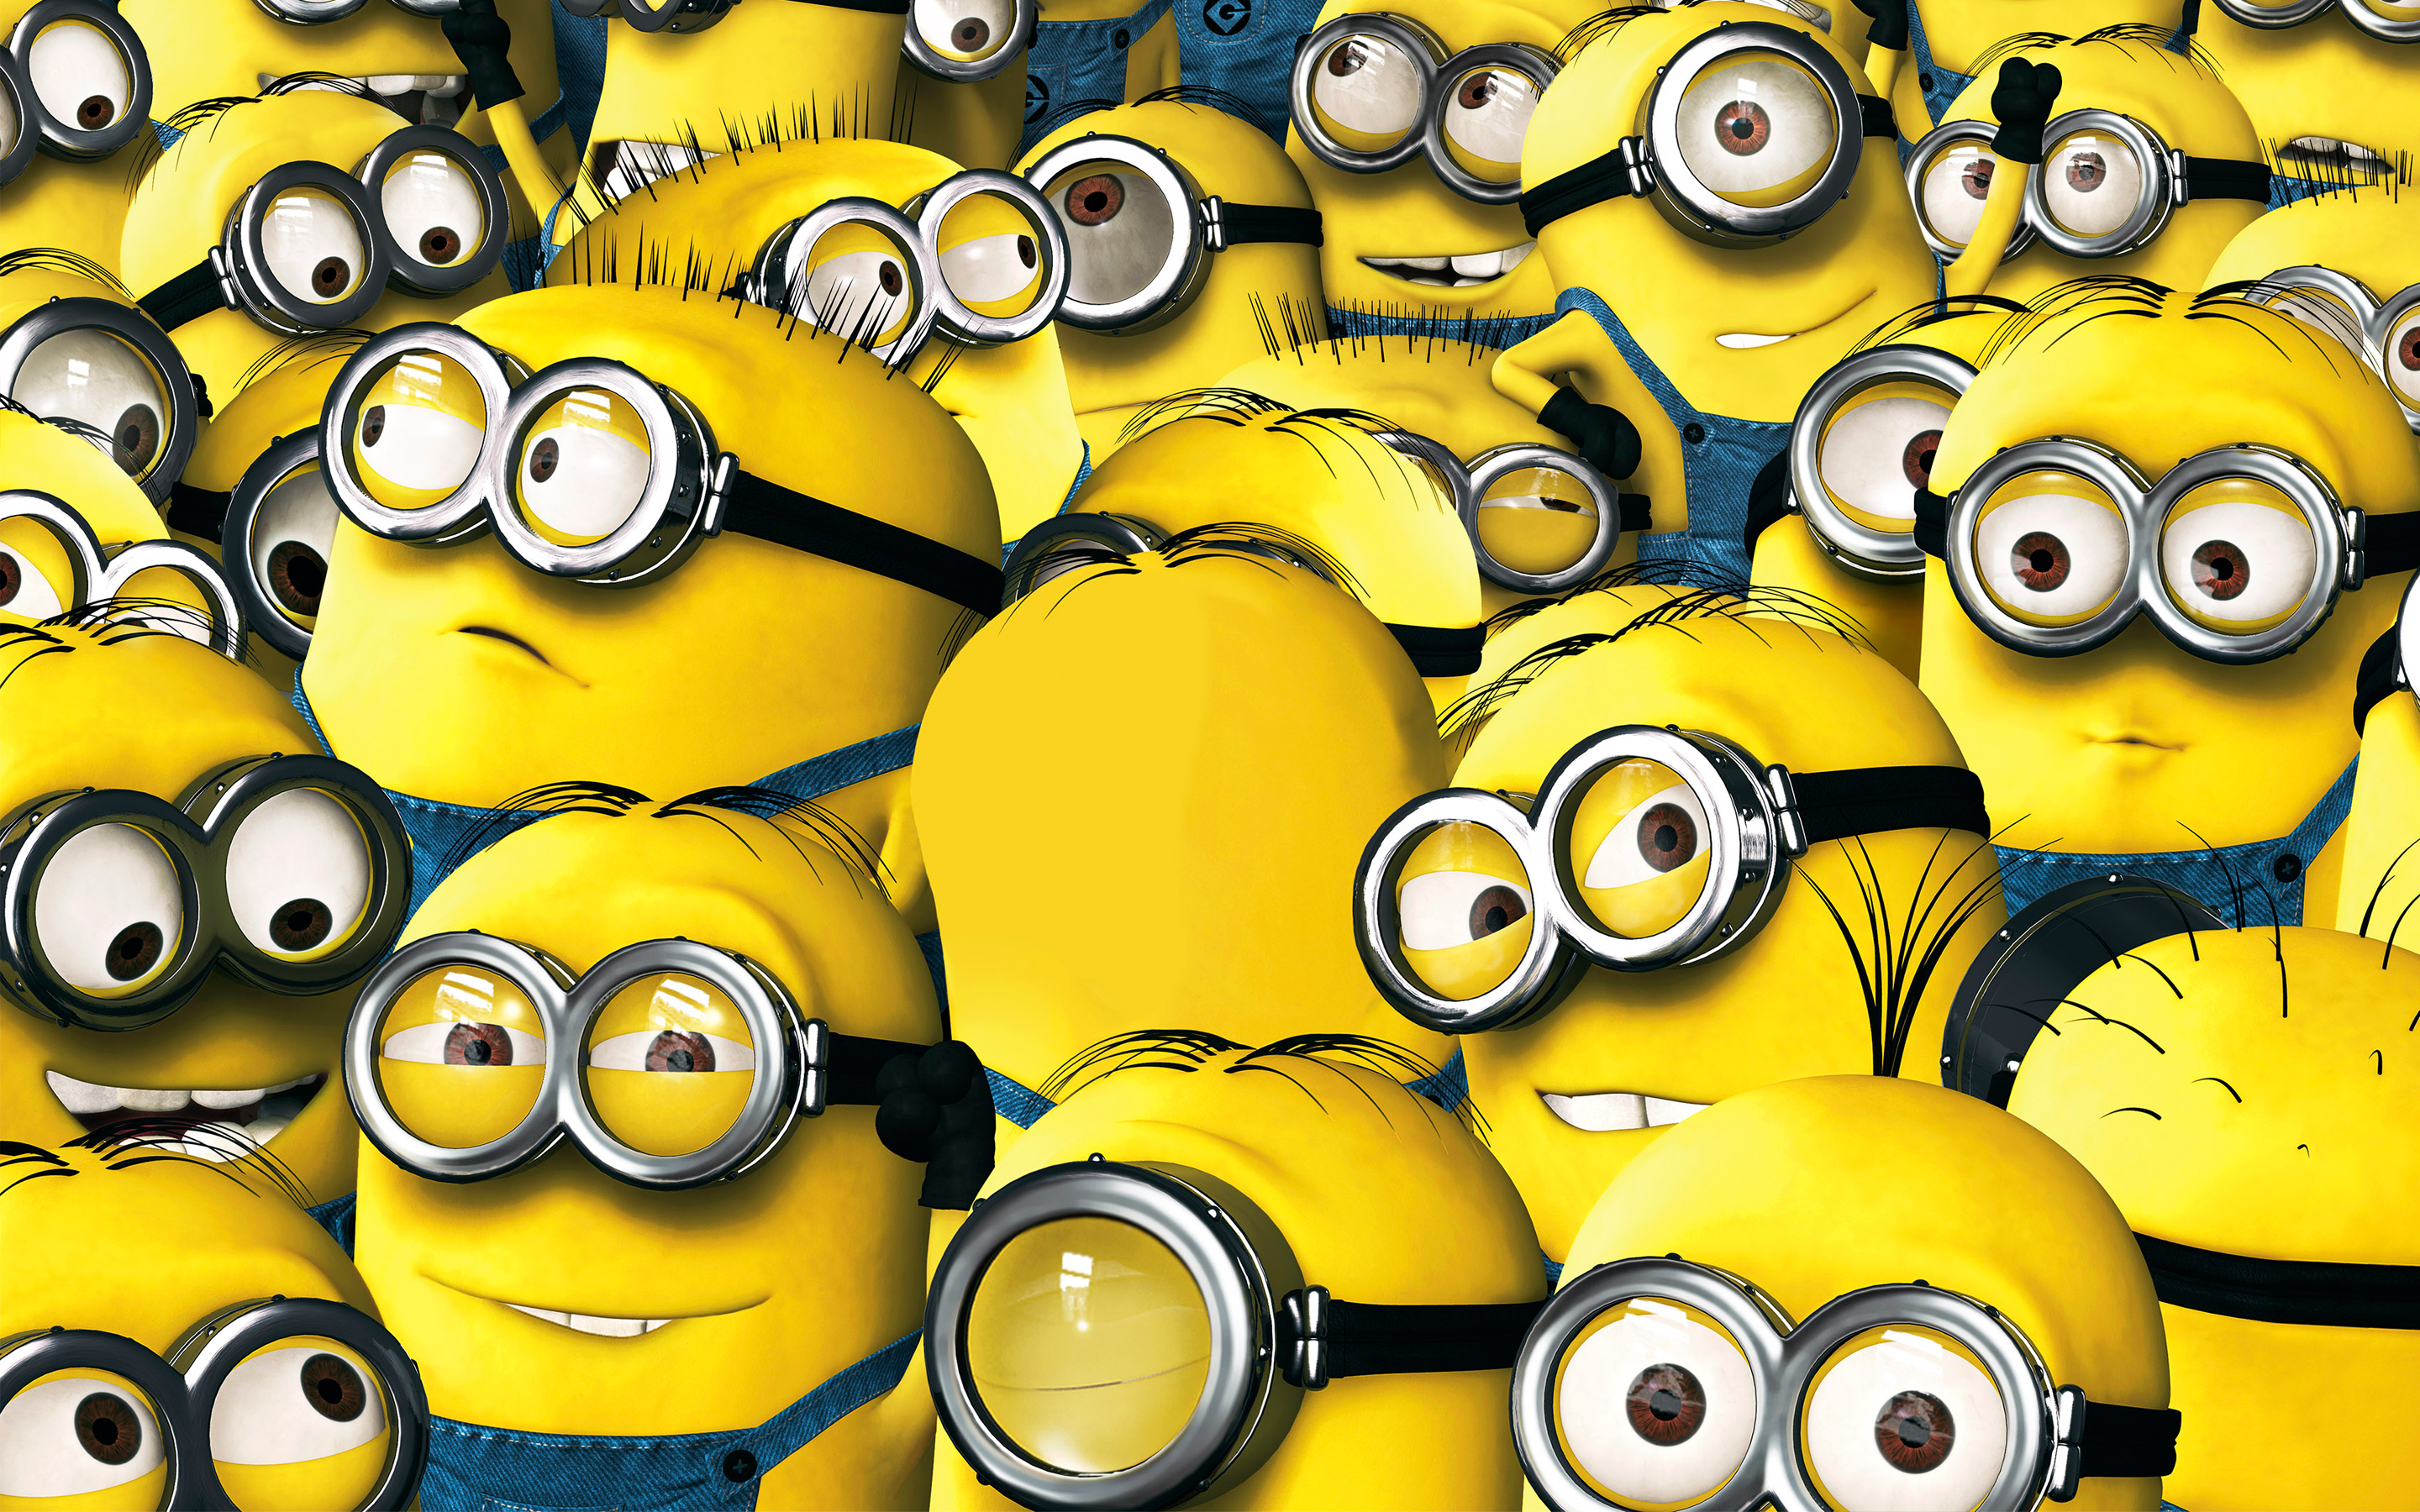 175 despicable me hd wallpapers | background images - wallpaper abyss